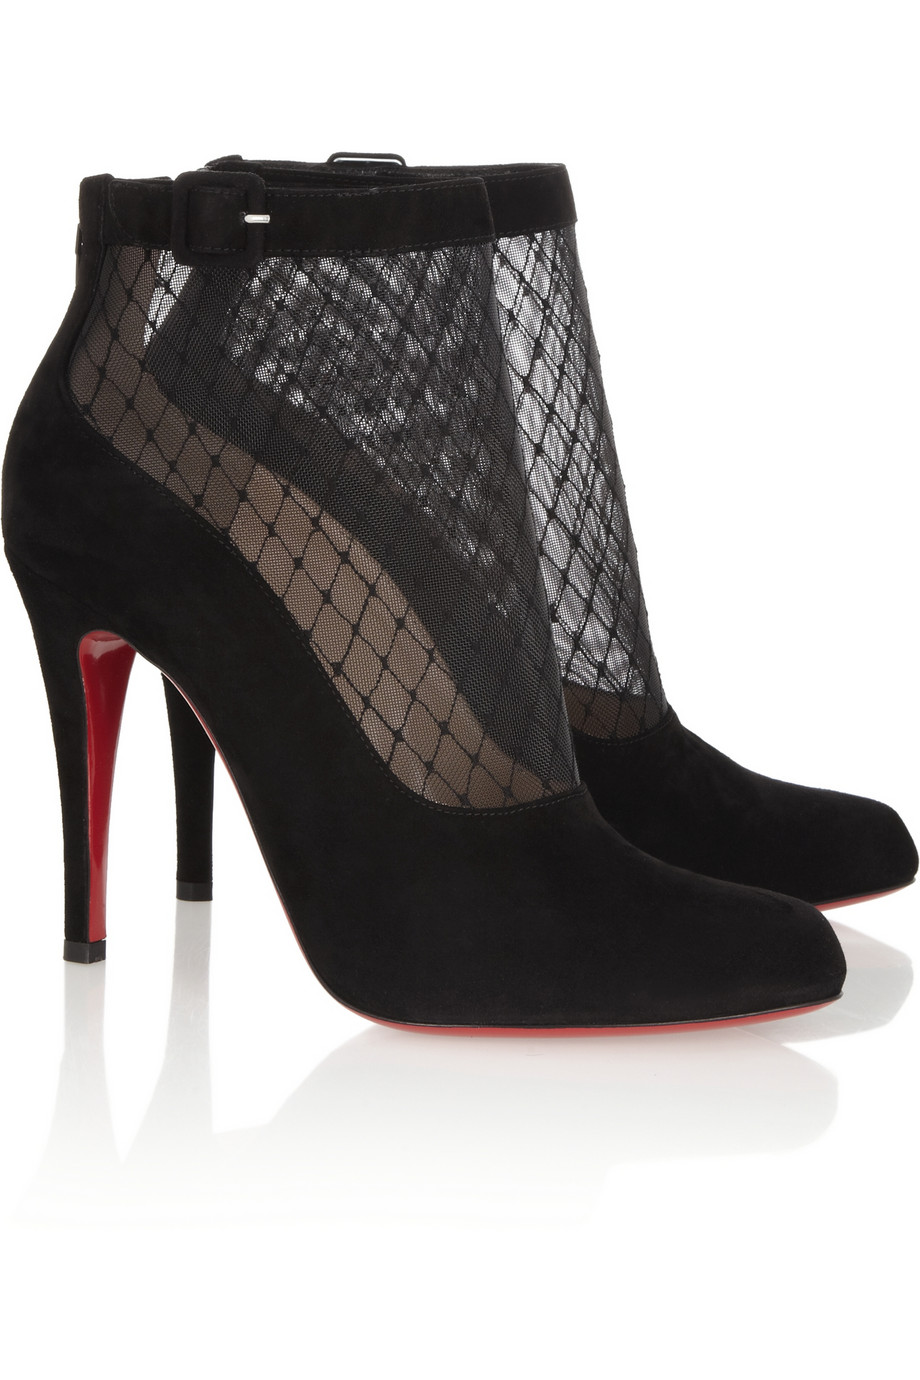 6e0d09e040b2 ... order christian louboutin resillissima 100 suede and mesh ankle boots  in a1231 095ff